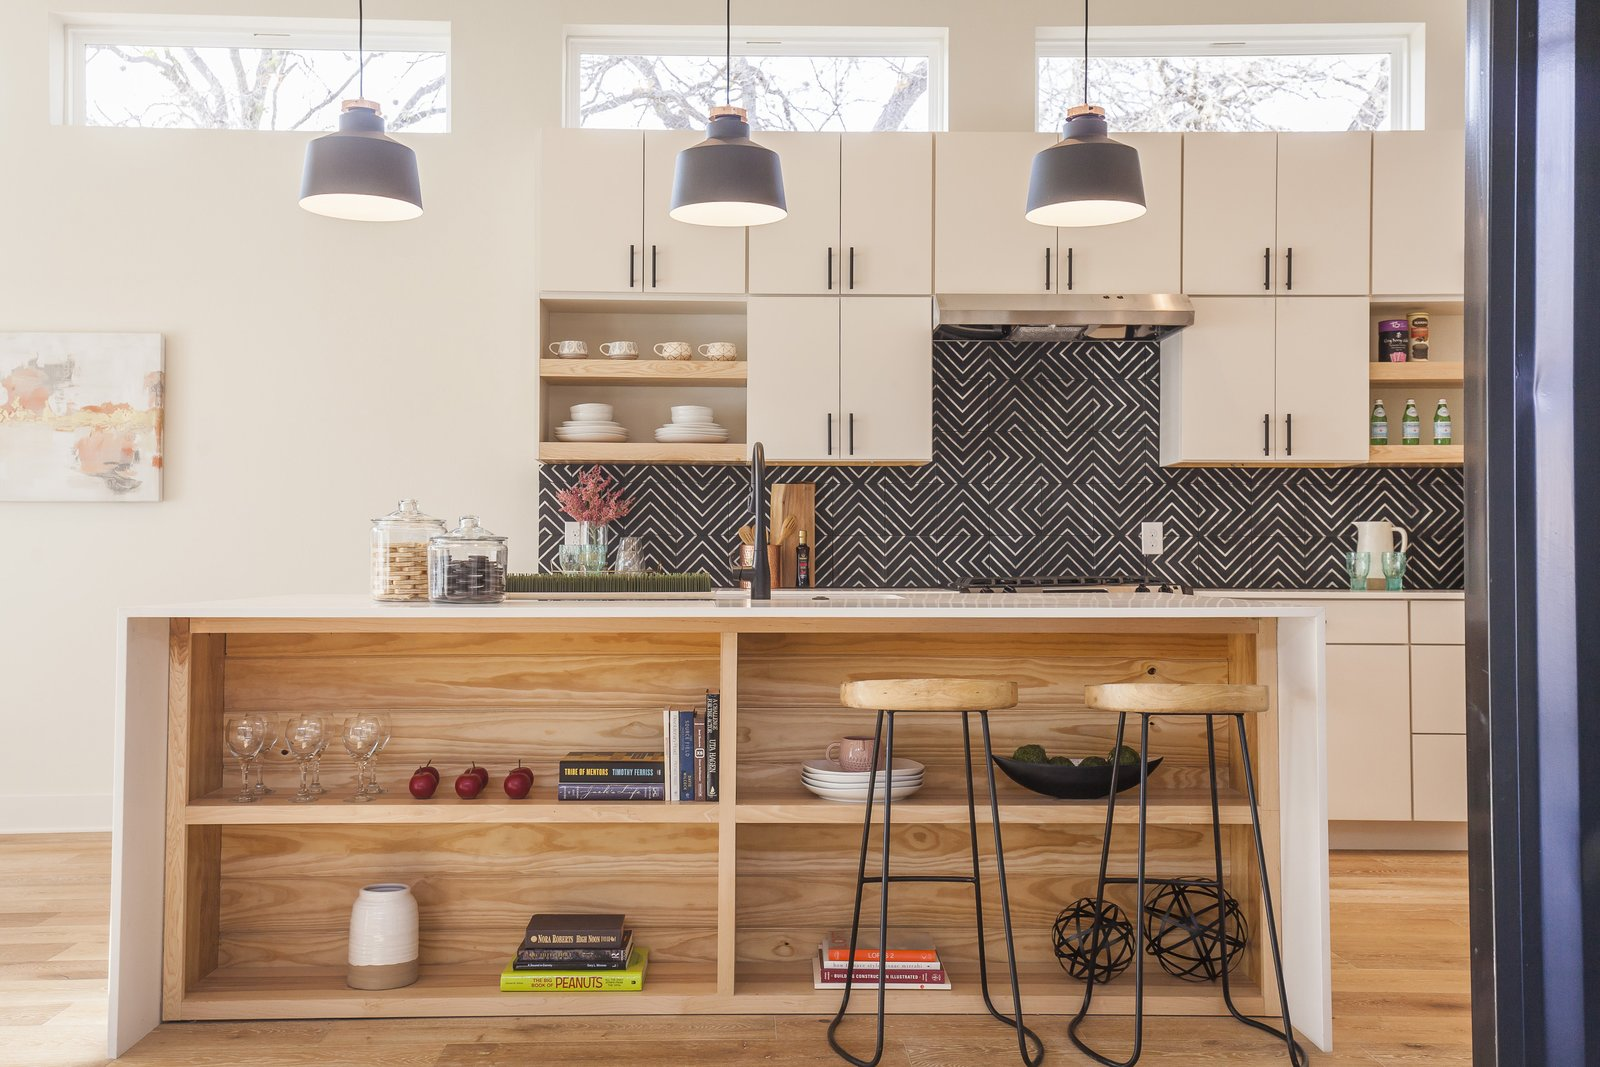 Kitchen, Wood, Engineered Quartz, Dishwasher, Concrete, Refrigerator, Open, Microwave, Light Hardwood, White, Undermount, and Pendant This is the Unit A Kitchen - a fun mix of warm colors and textures. 10/10 would buy :)  Kitchen Concrete Pendant Open Photos from The Reyes Duplex